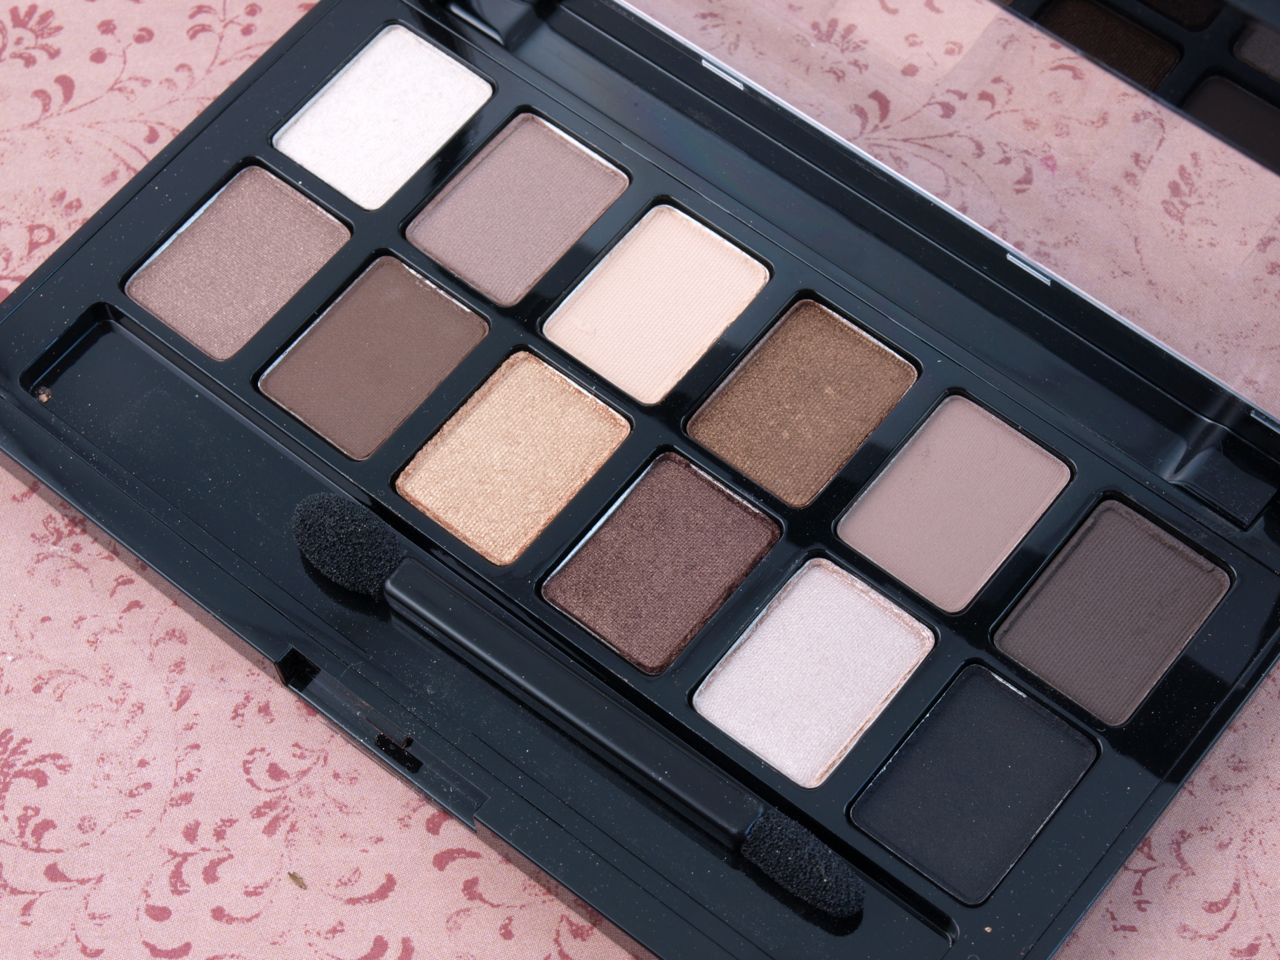 Maybelline The Nudes & The Blushed Nudes Eyeshadow Palettes: Review and Swatches